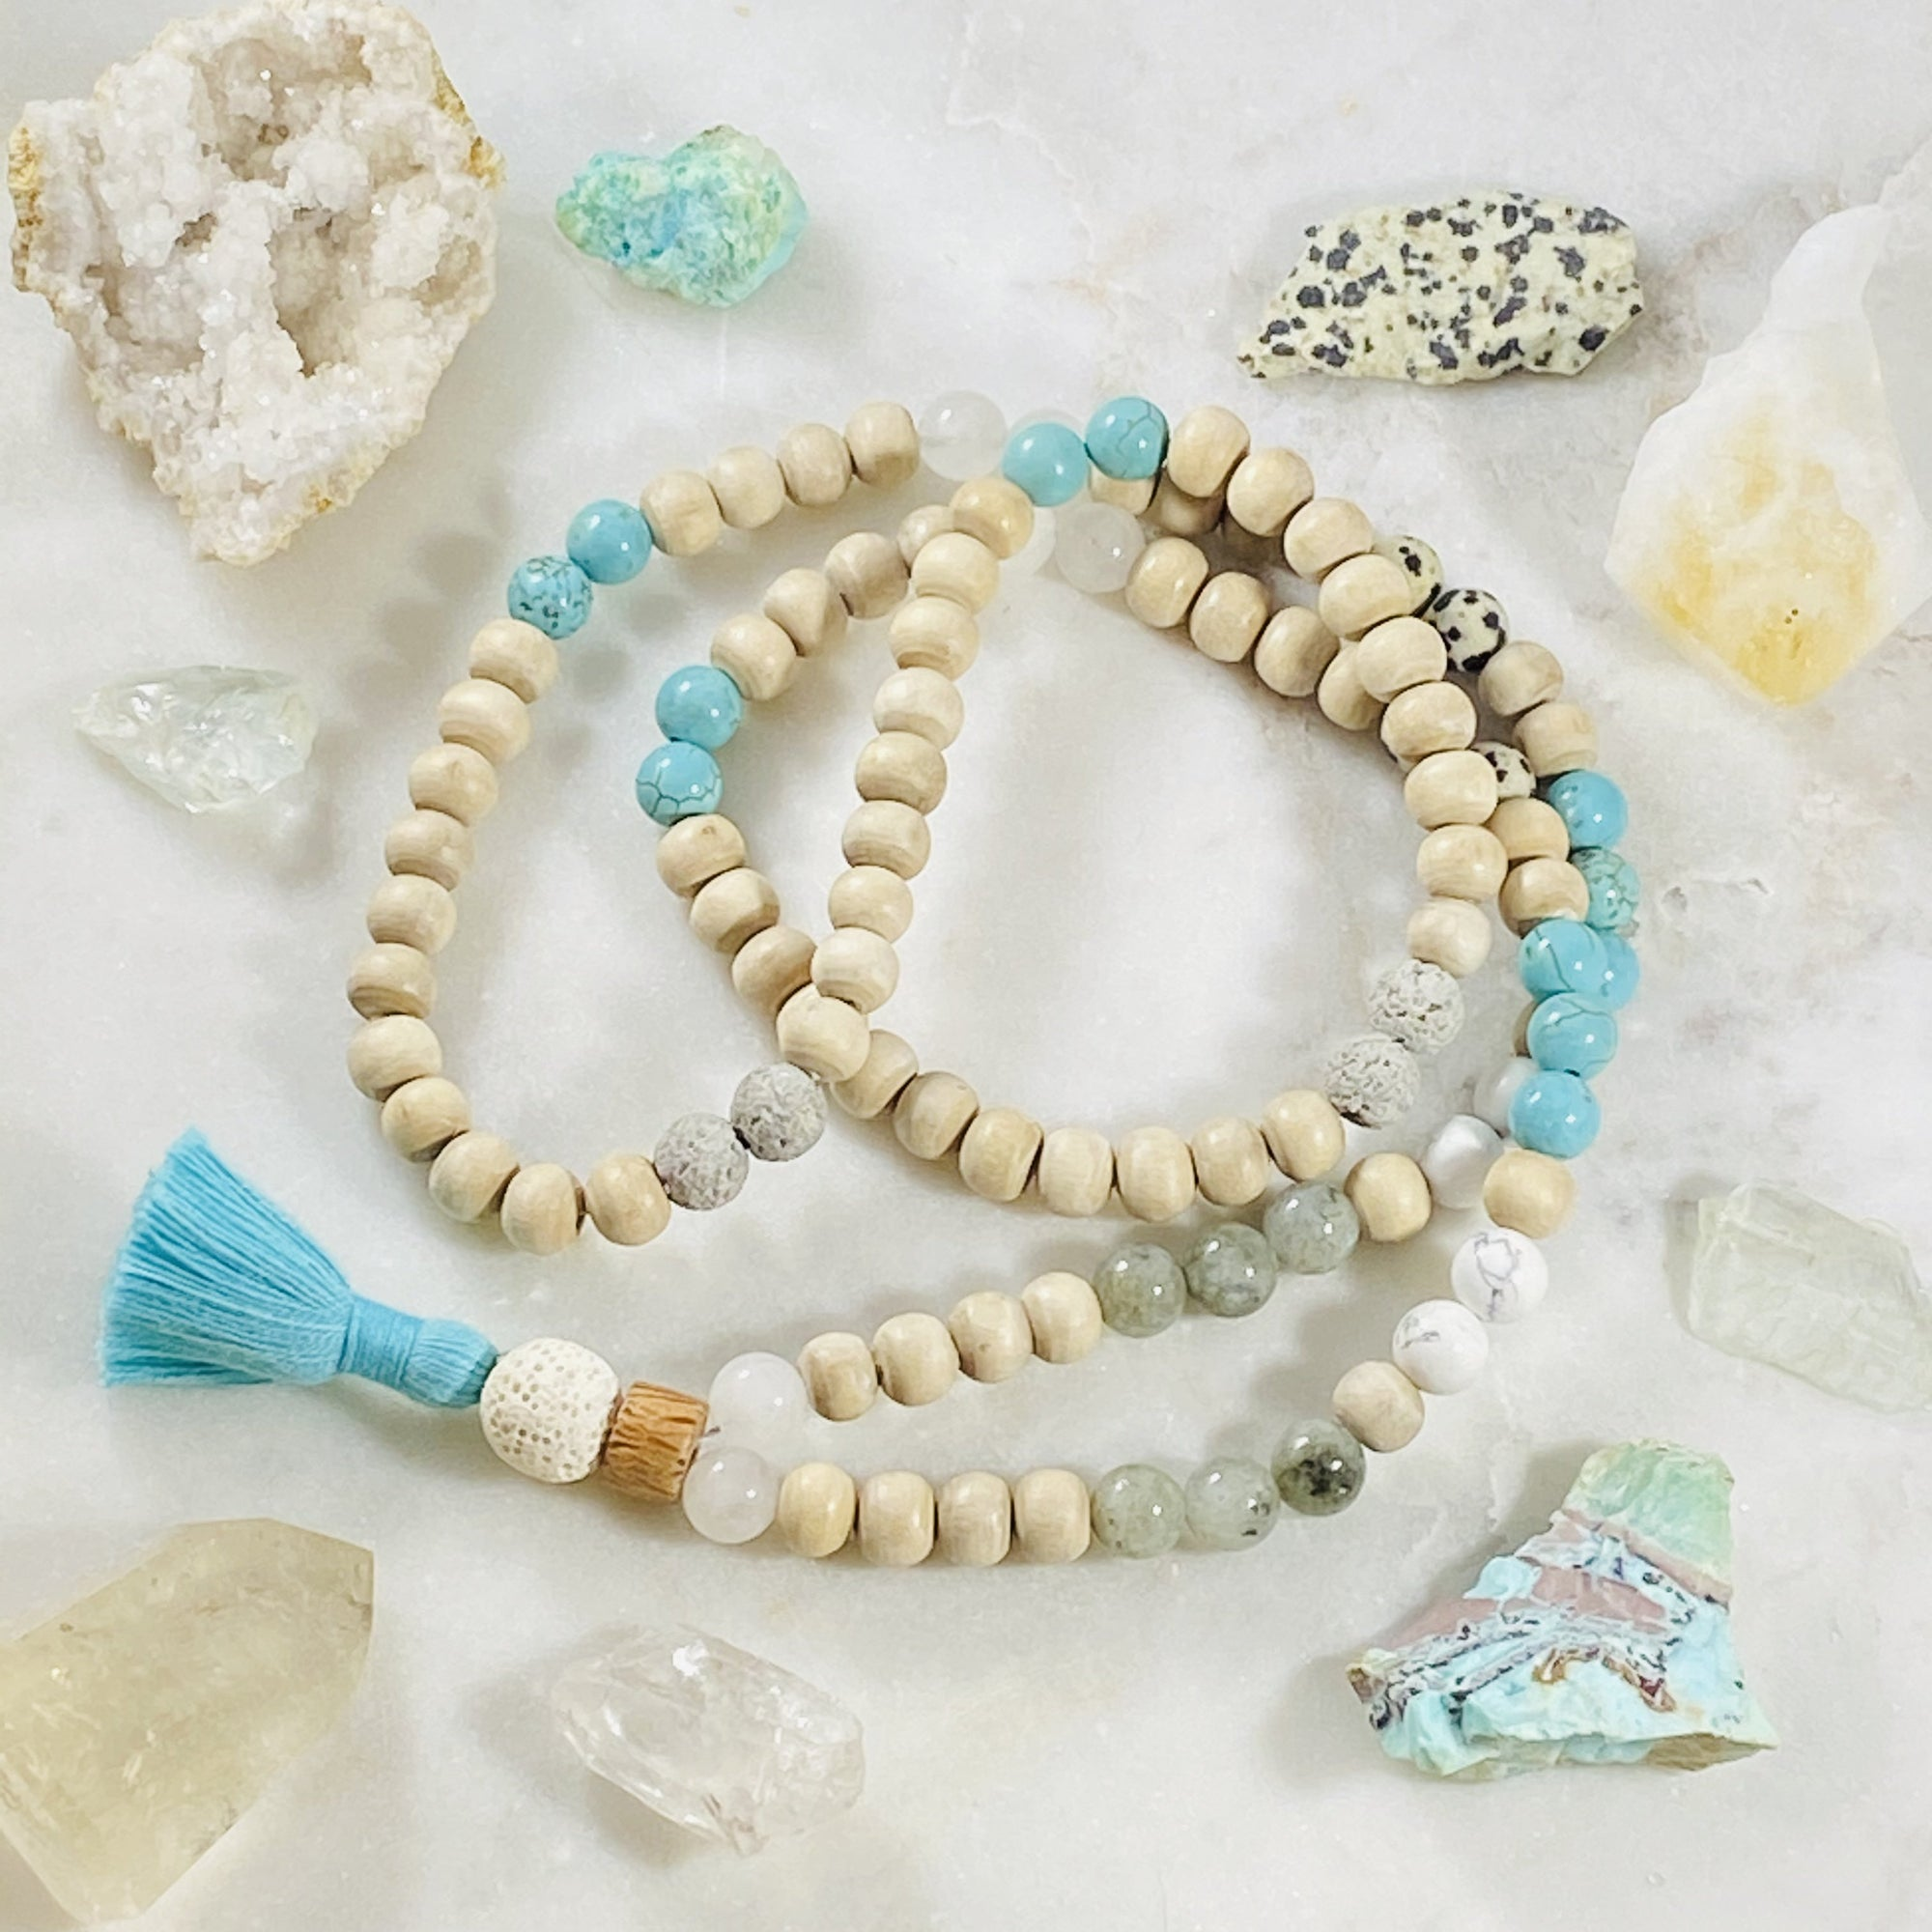 Handmade mala beads for yoga and meditation